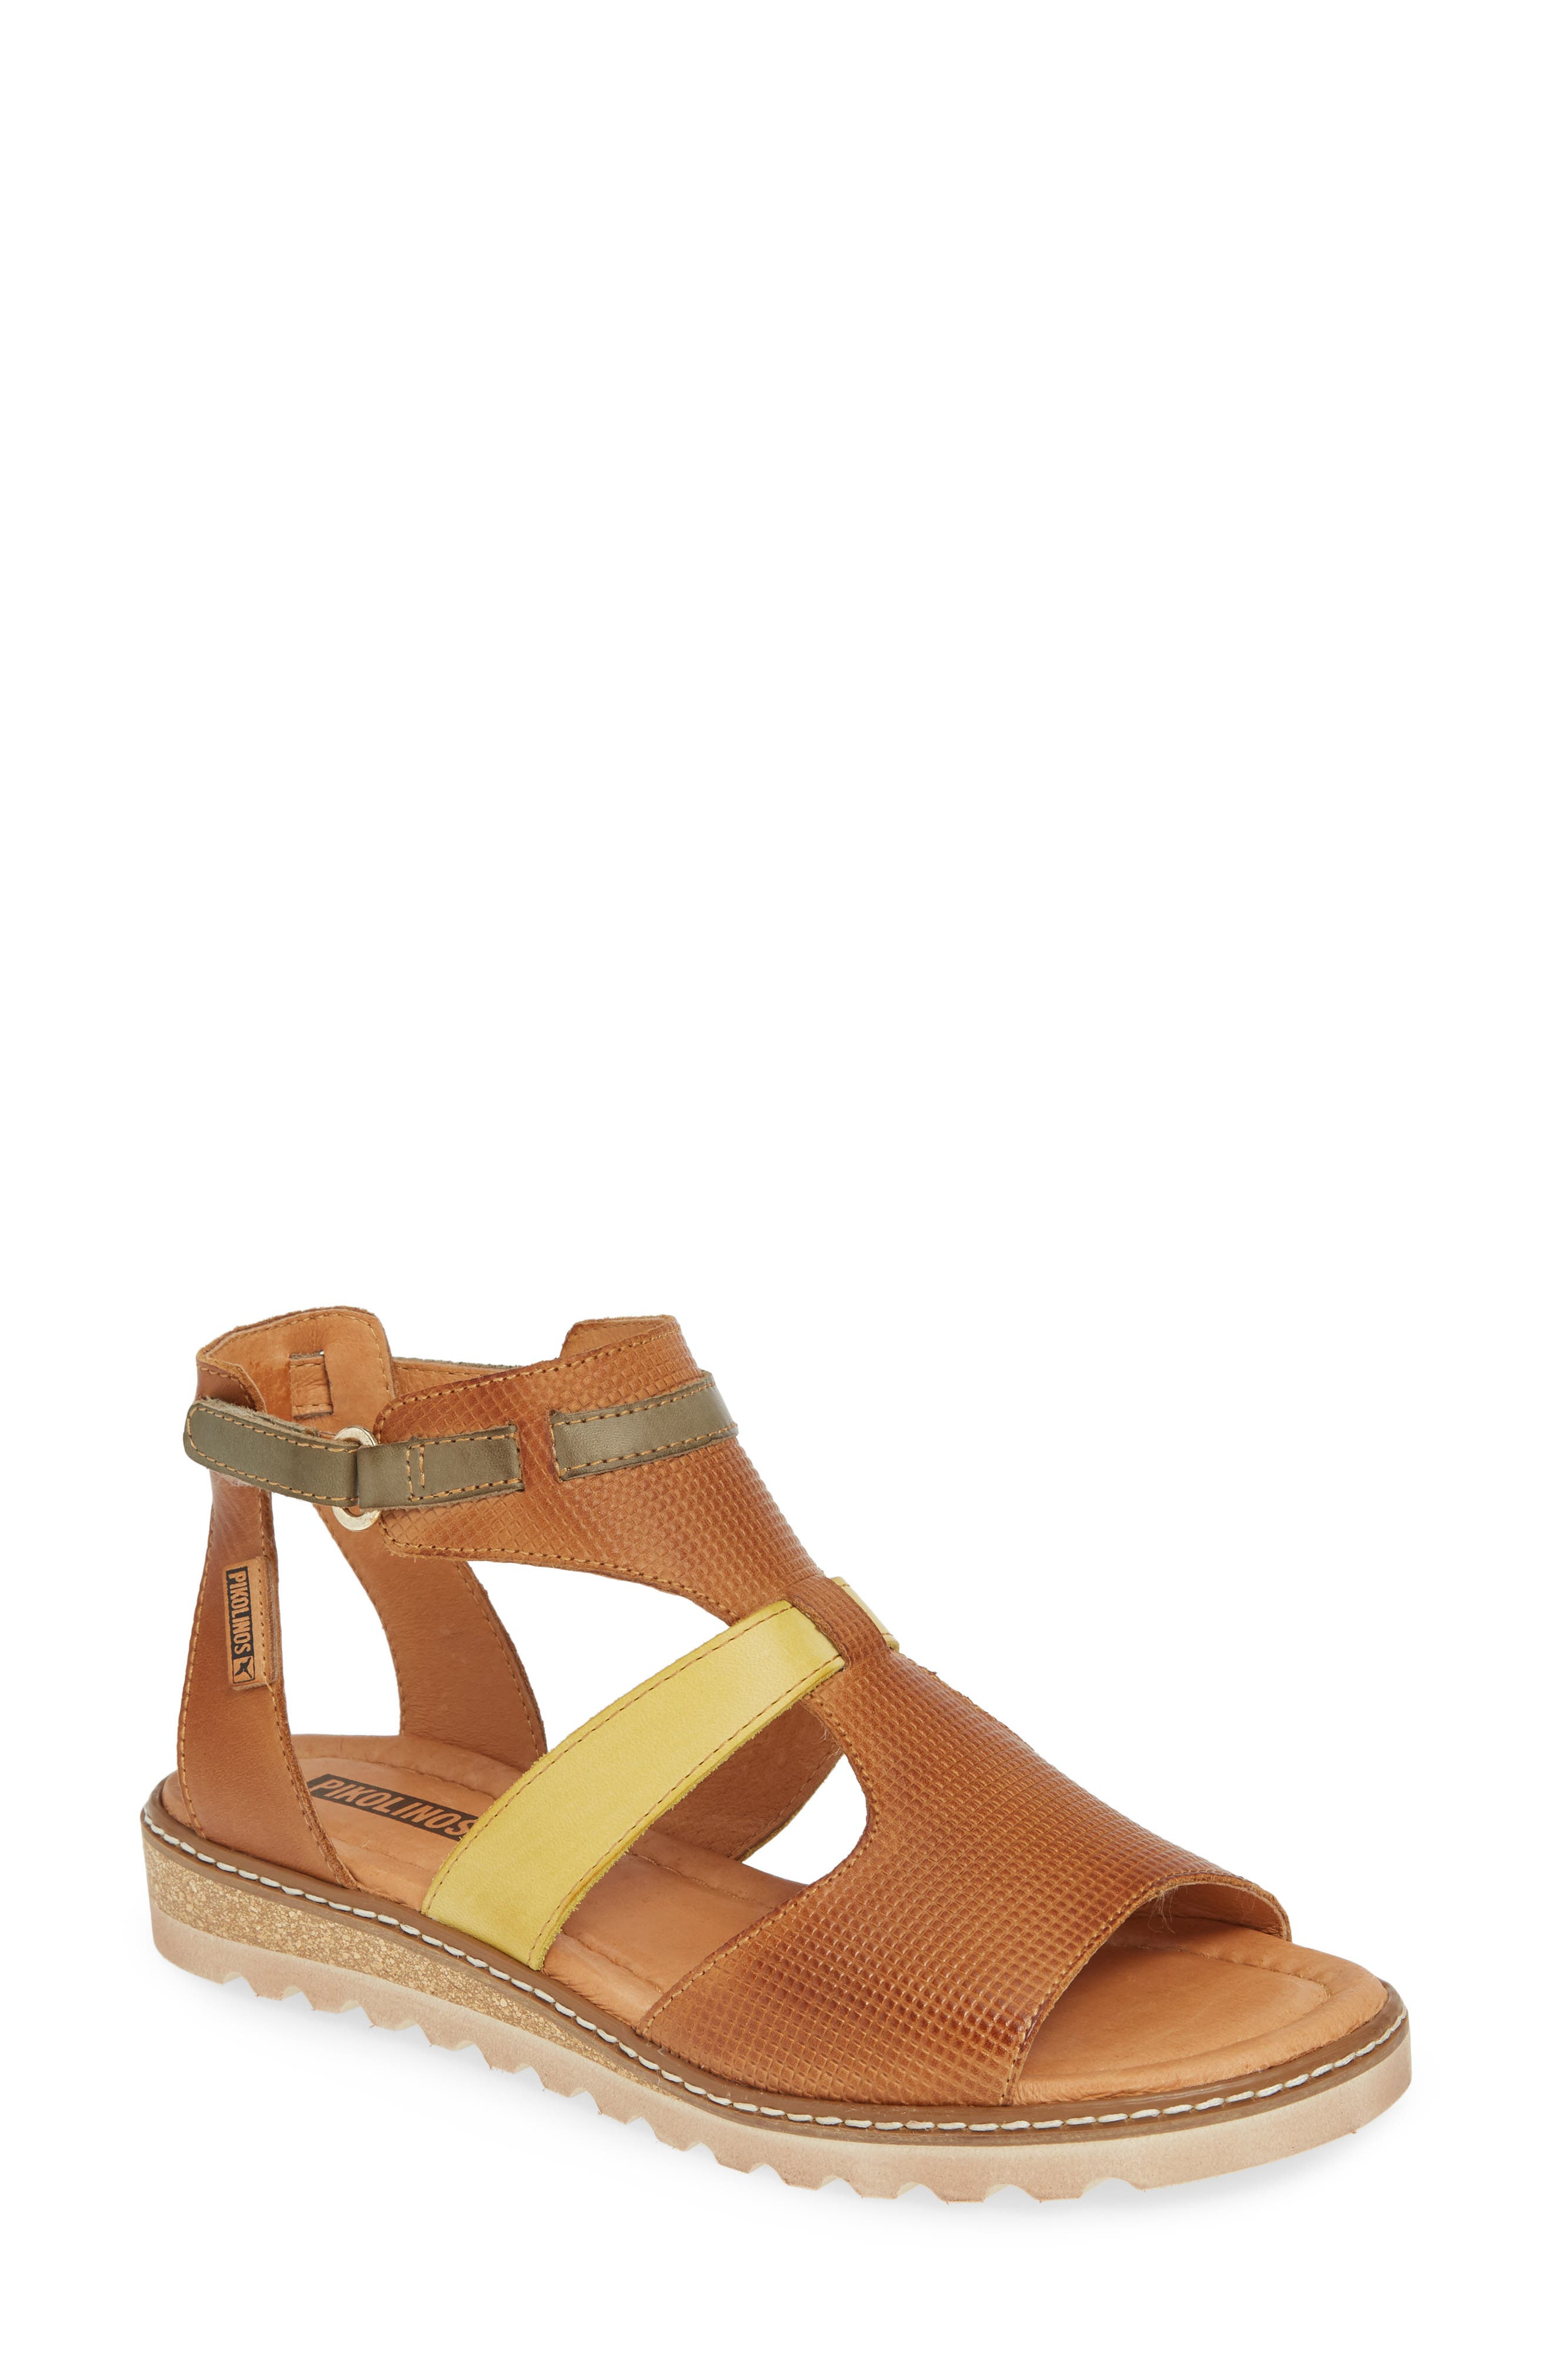 Alcudia Multiband Sandal by Pikolinos